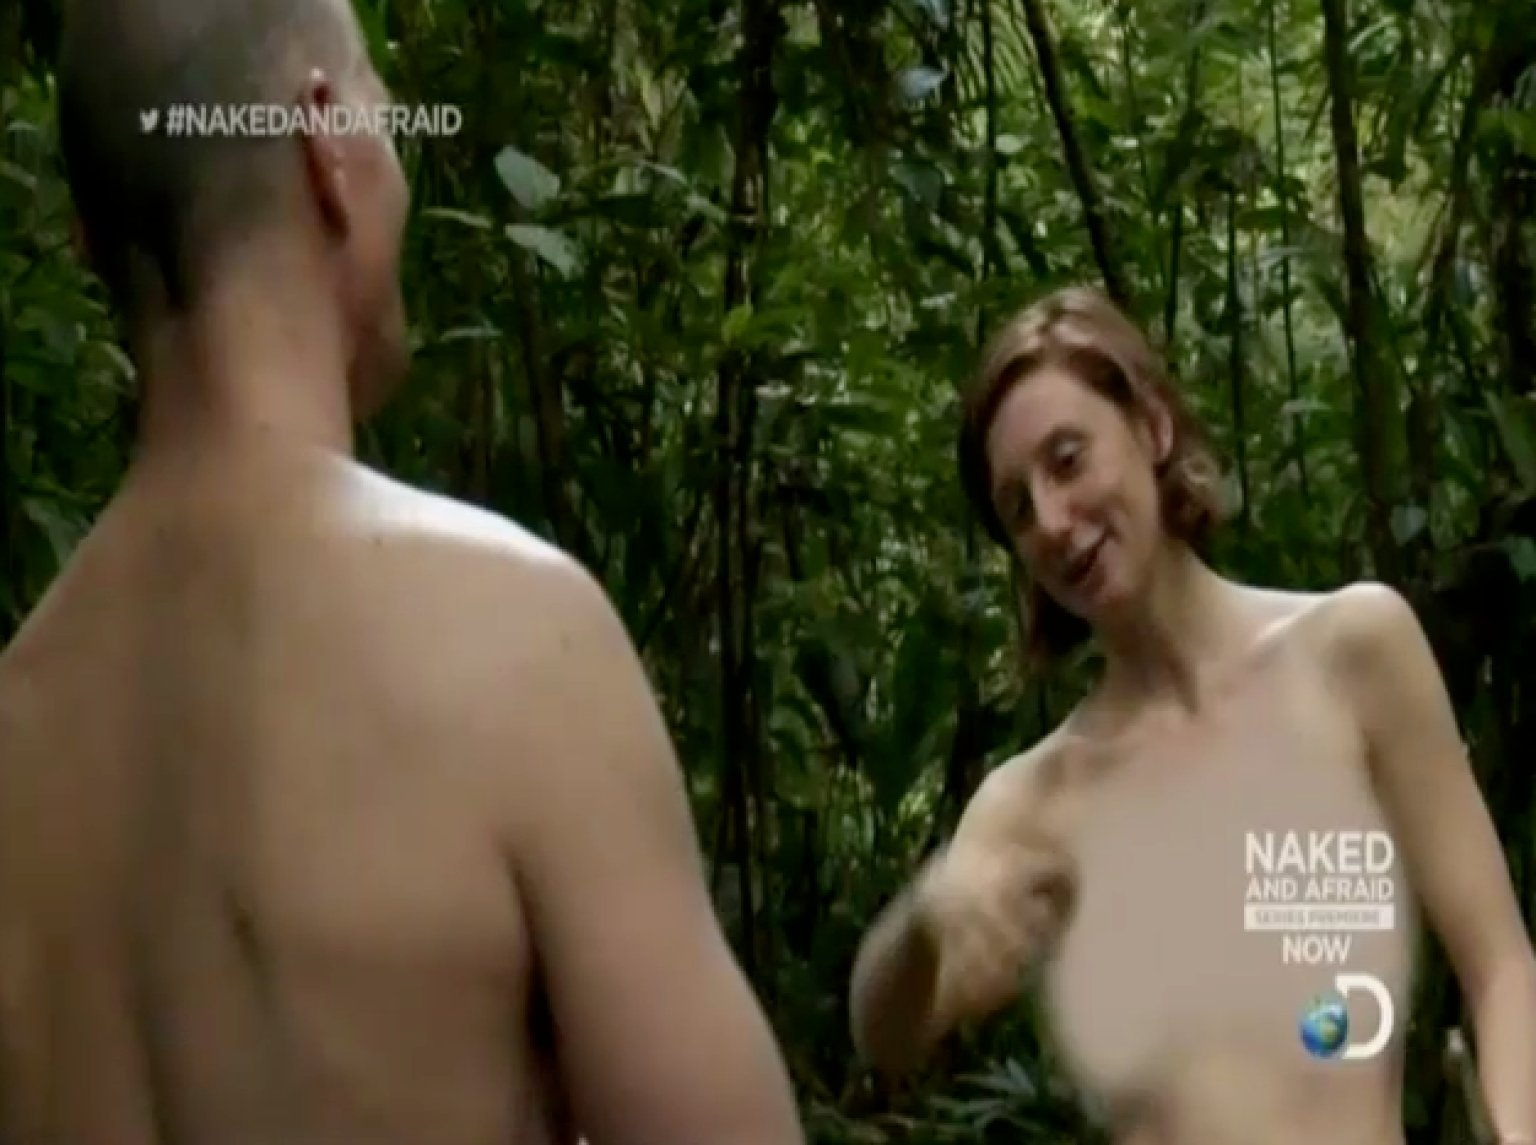 Naked and afraid x rated